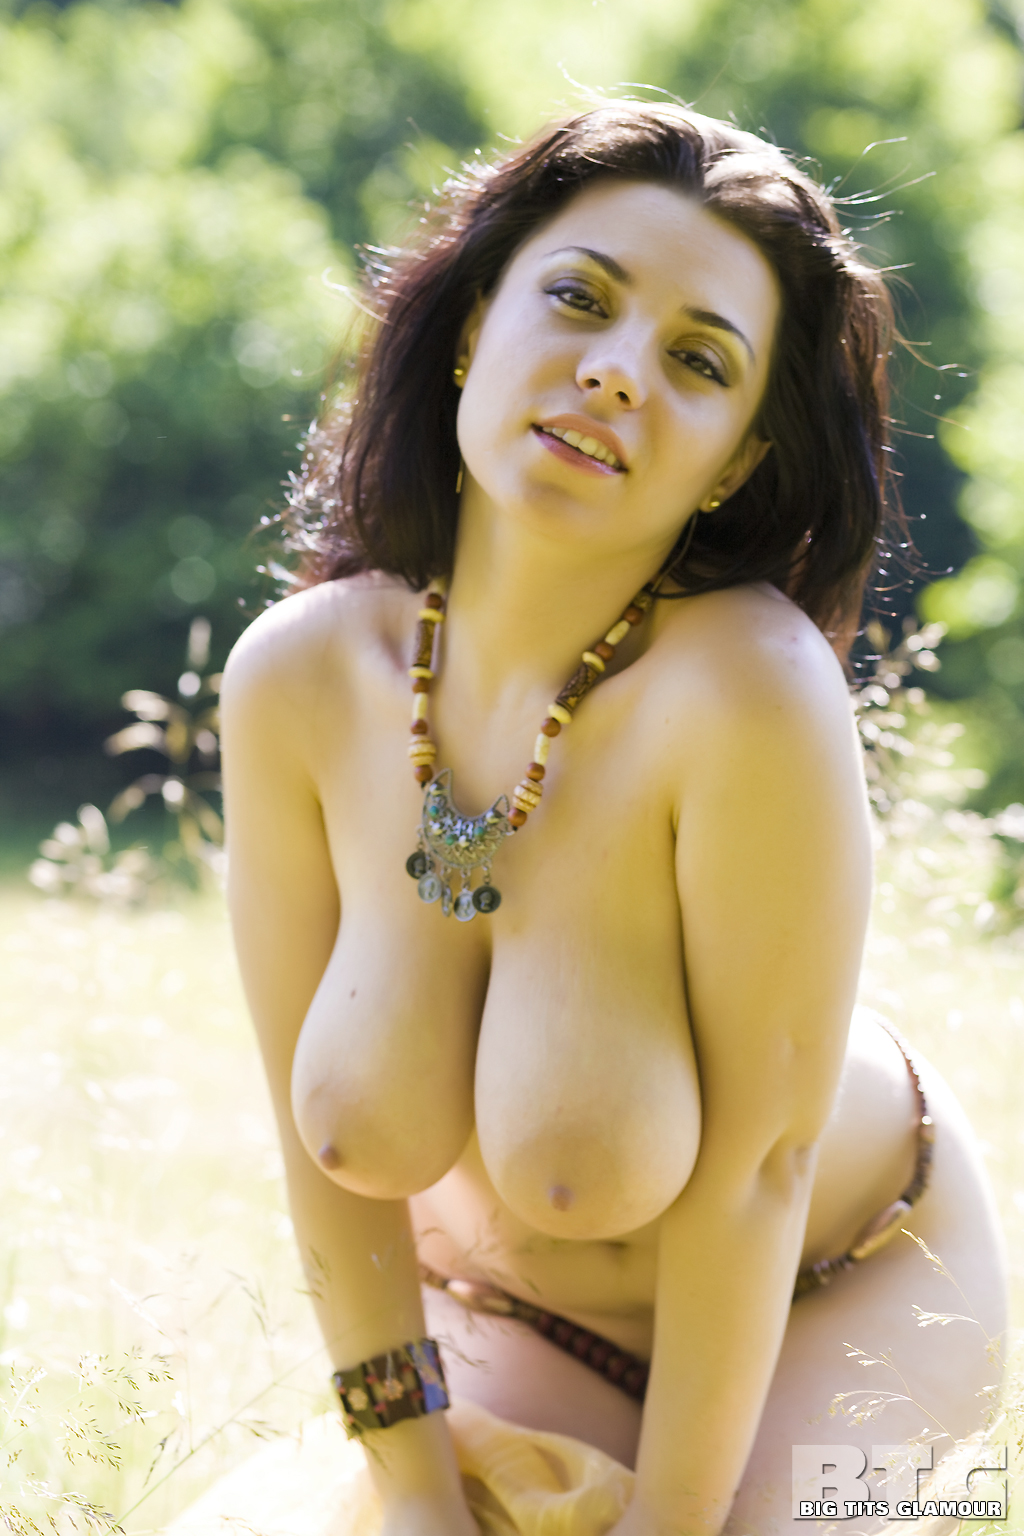 Naked pakistani babes pics galleries